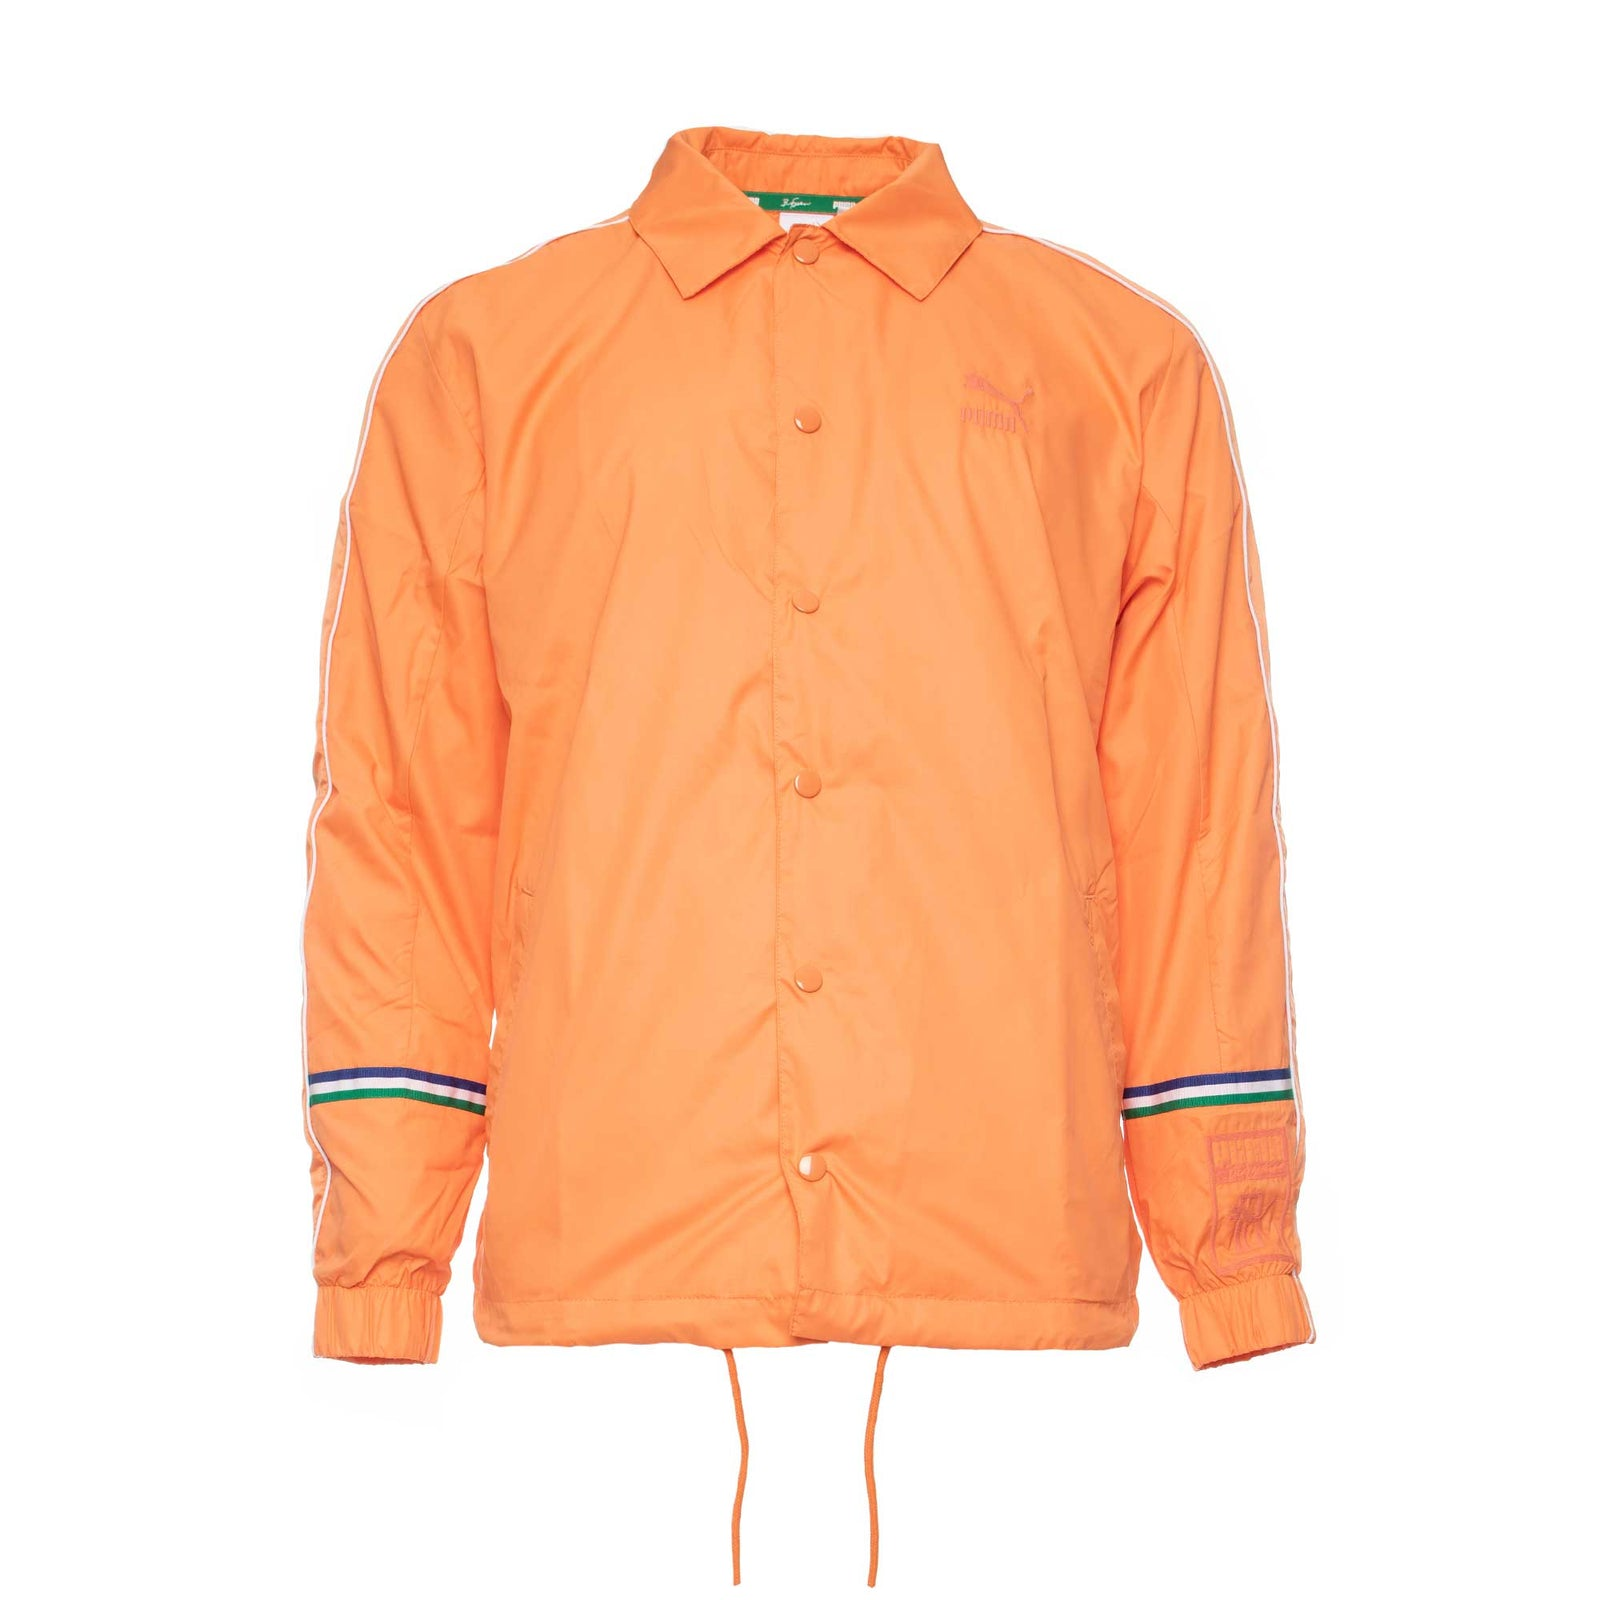 Puma X Big Sean Men's Jacket Melon